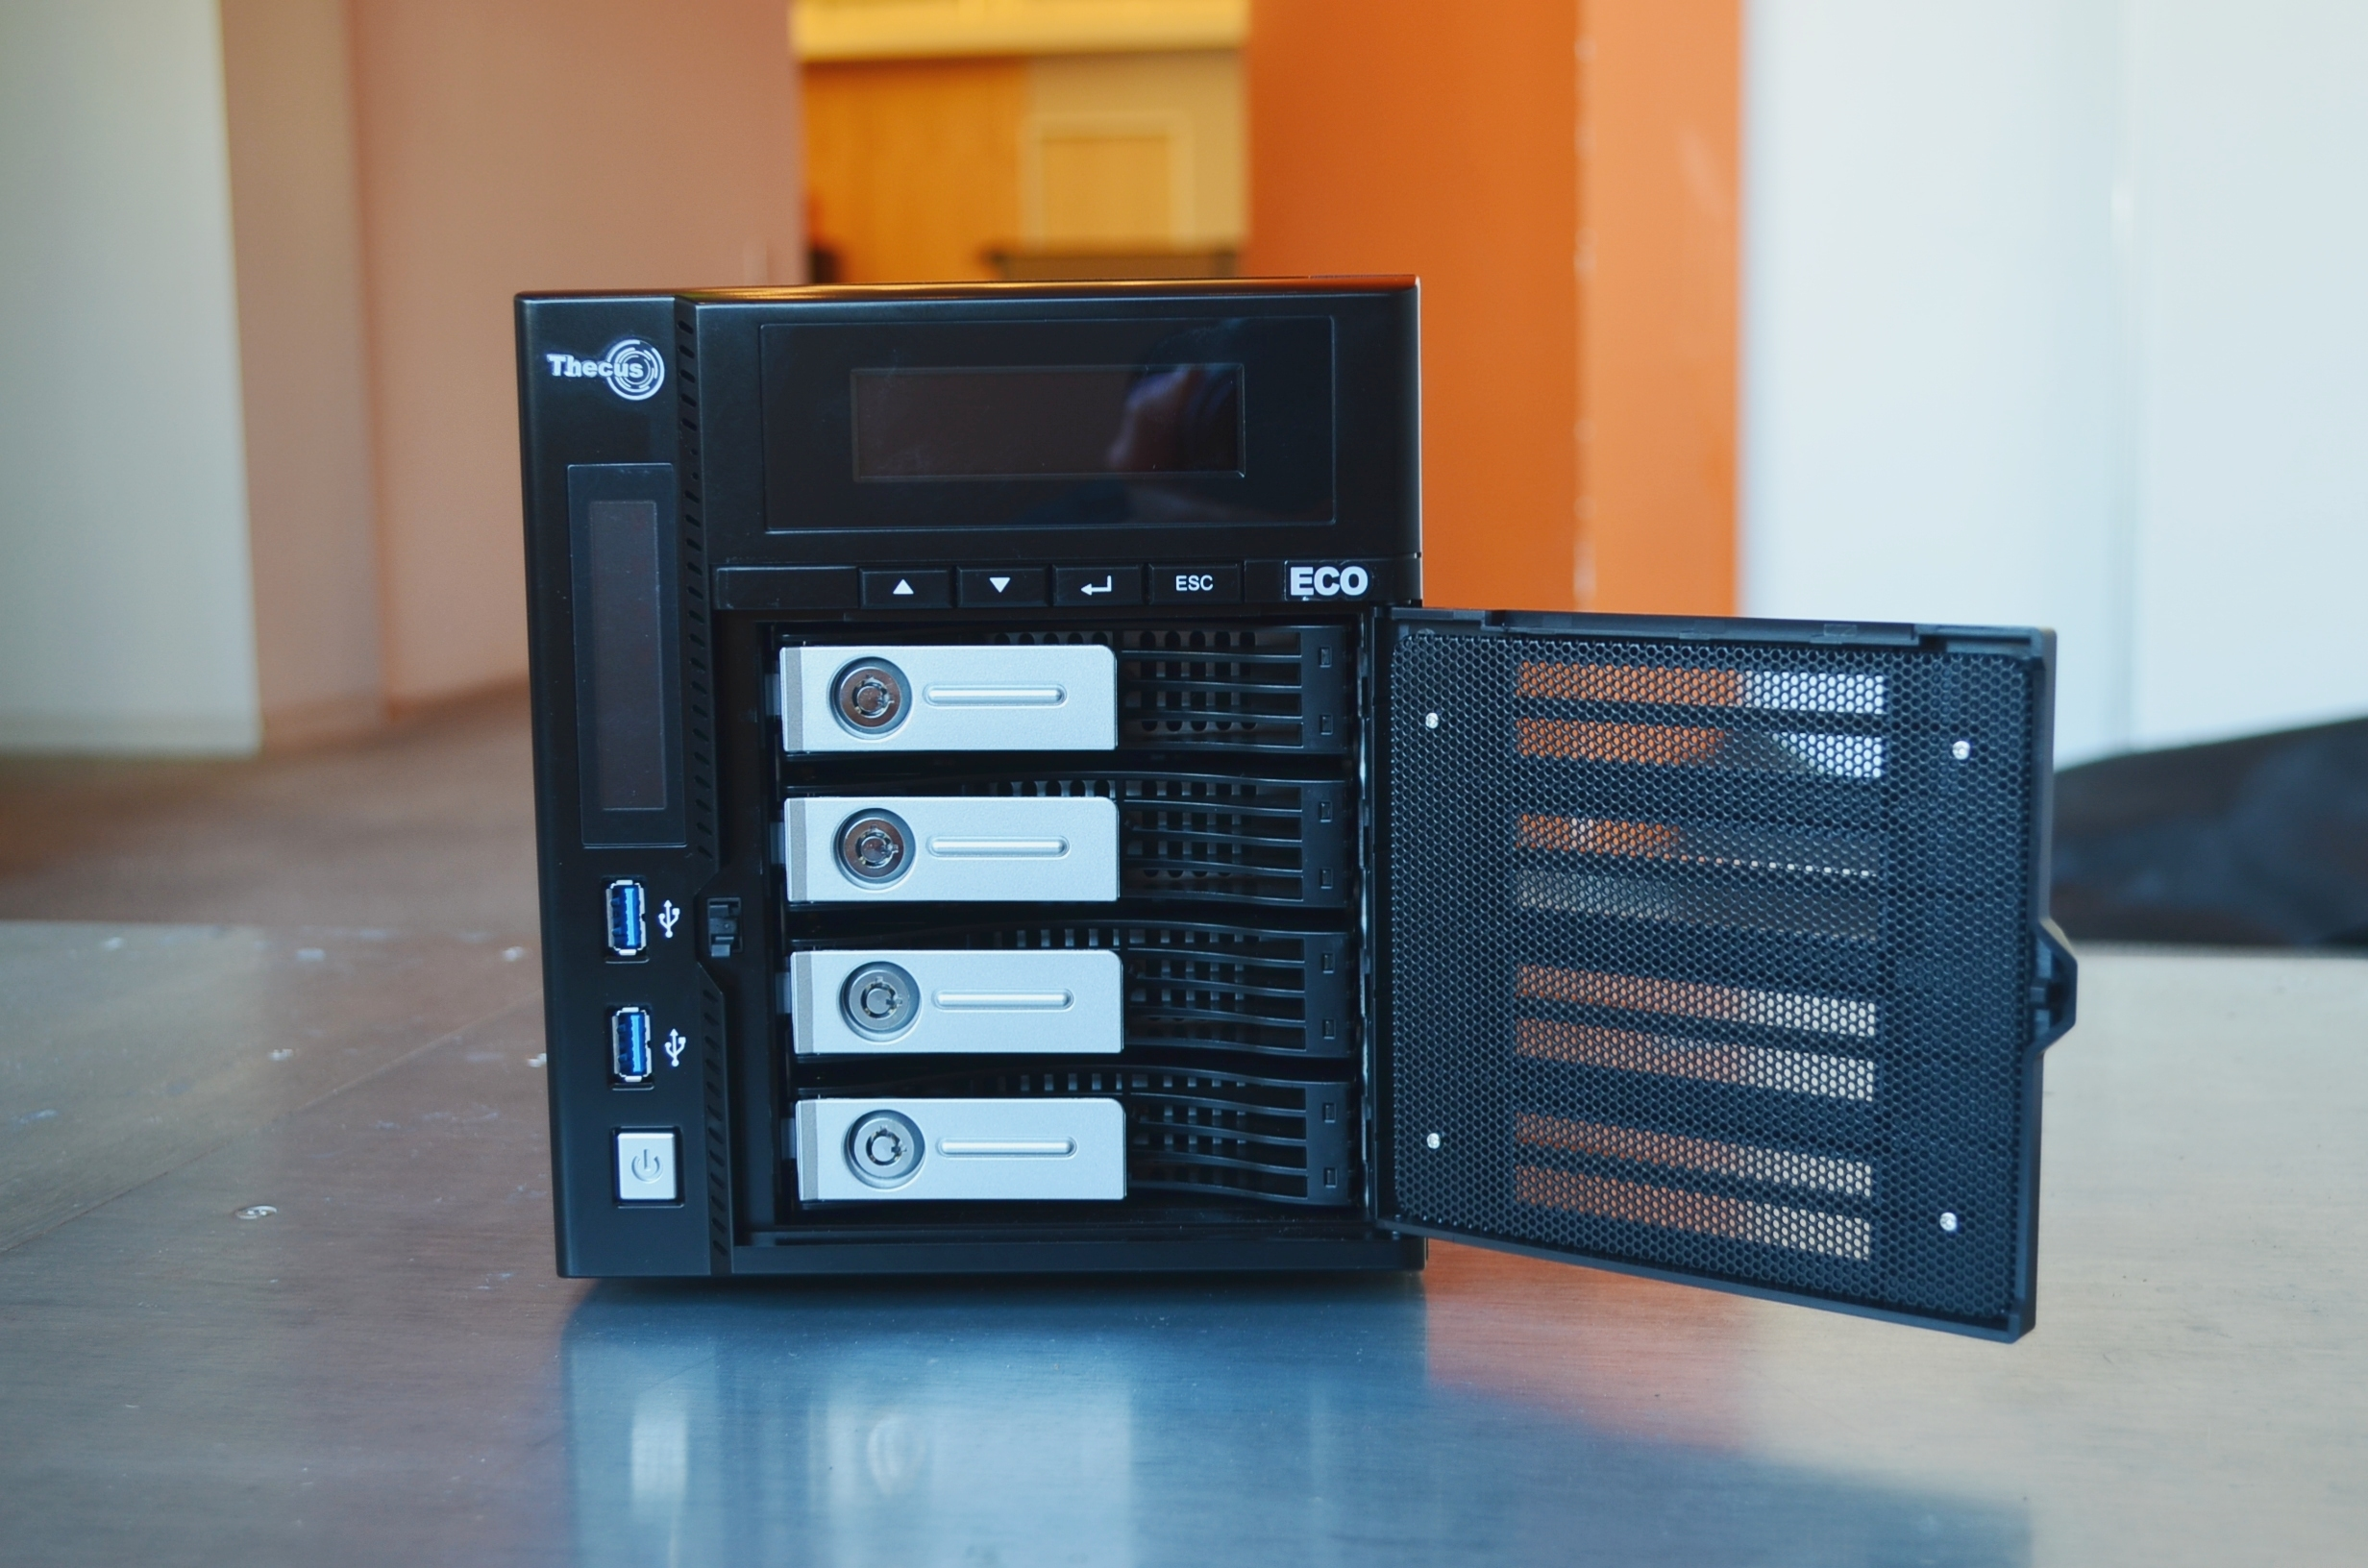 The N4800eco comes with an excellent front-accessible drive bays.